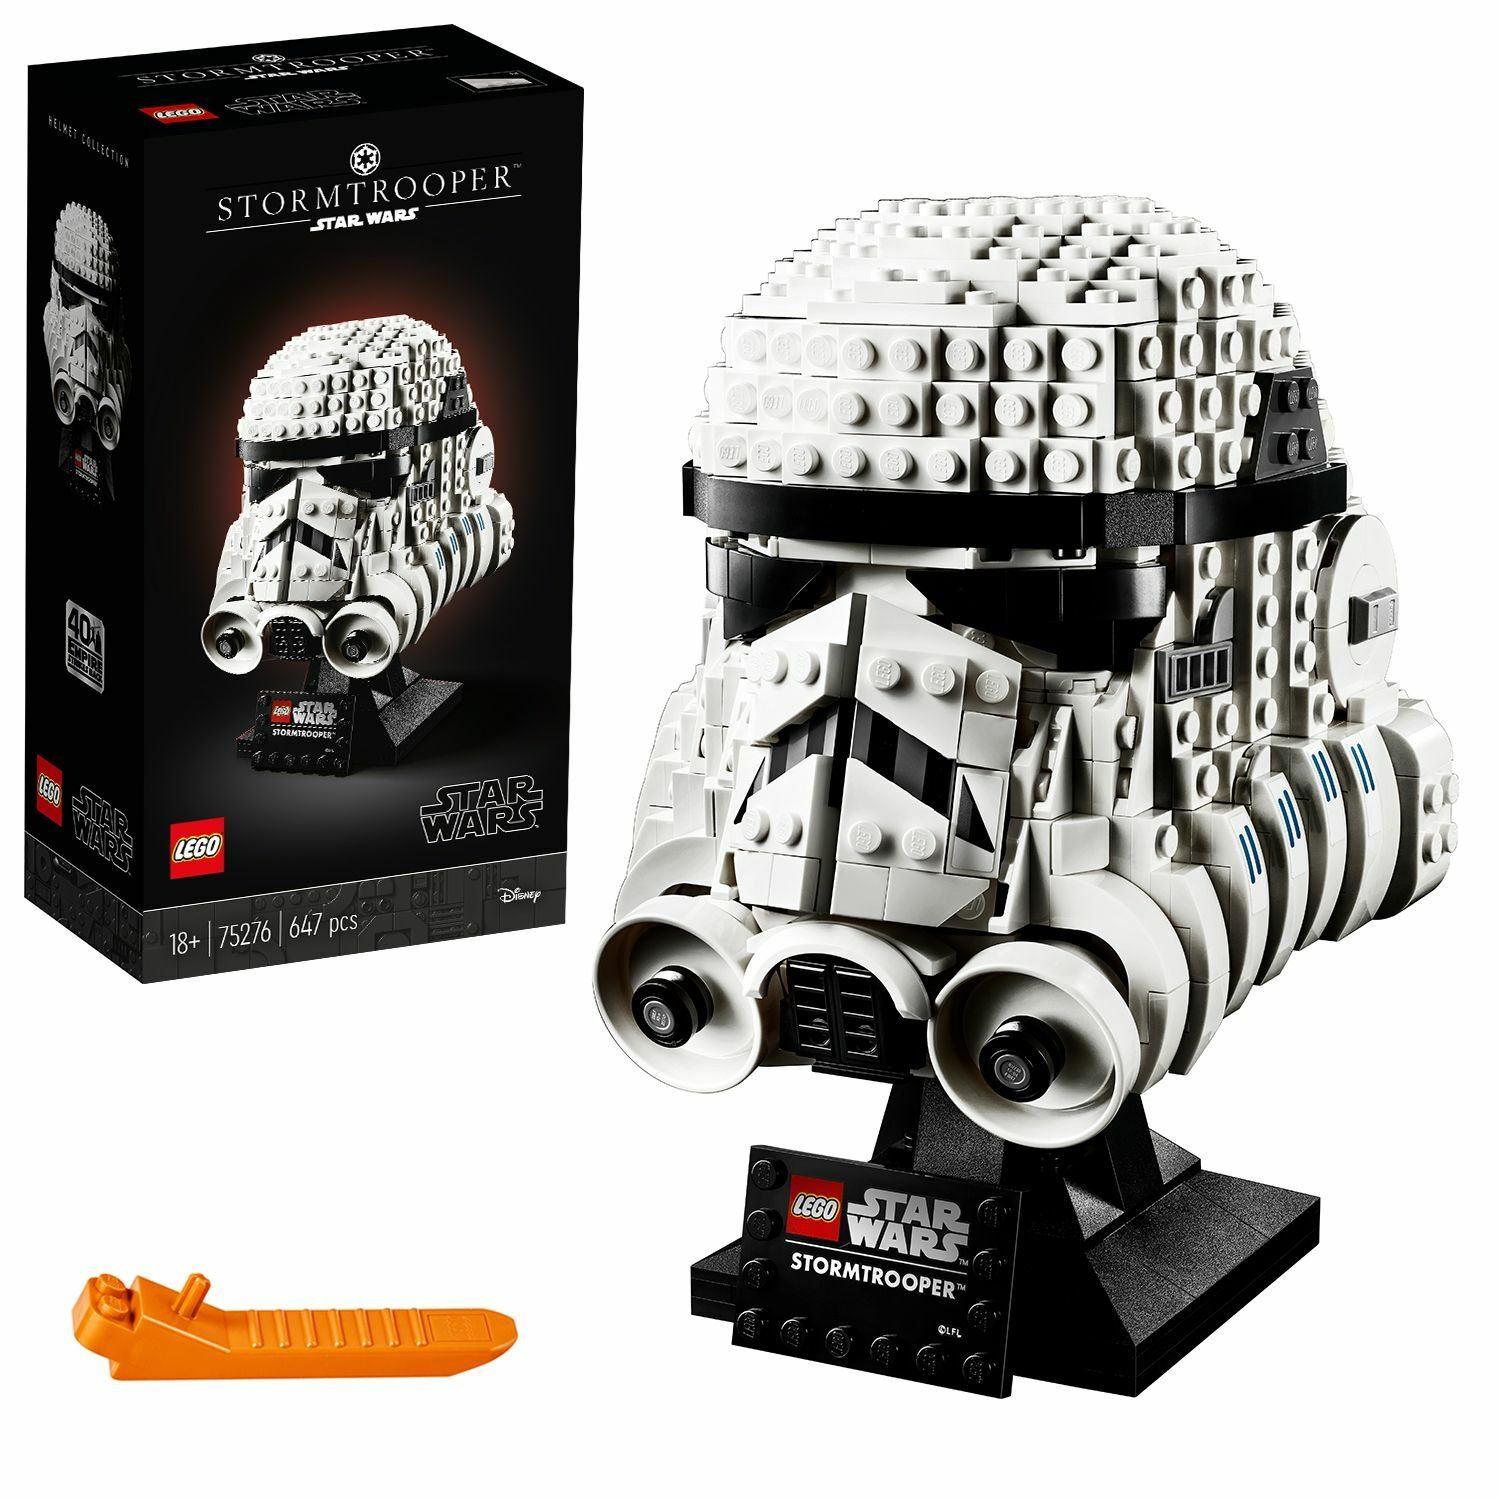 LEGO Star Wars Stormtrooper Helmet Display Set - 75276